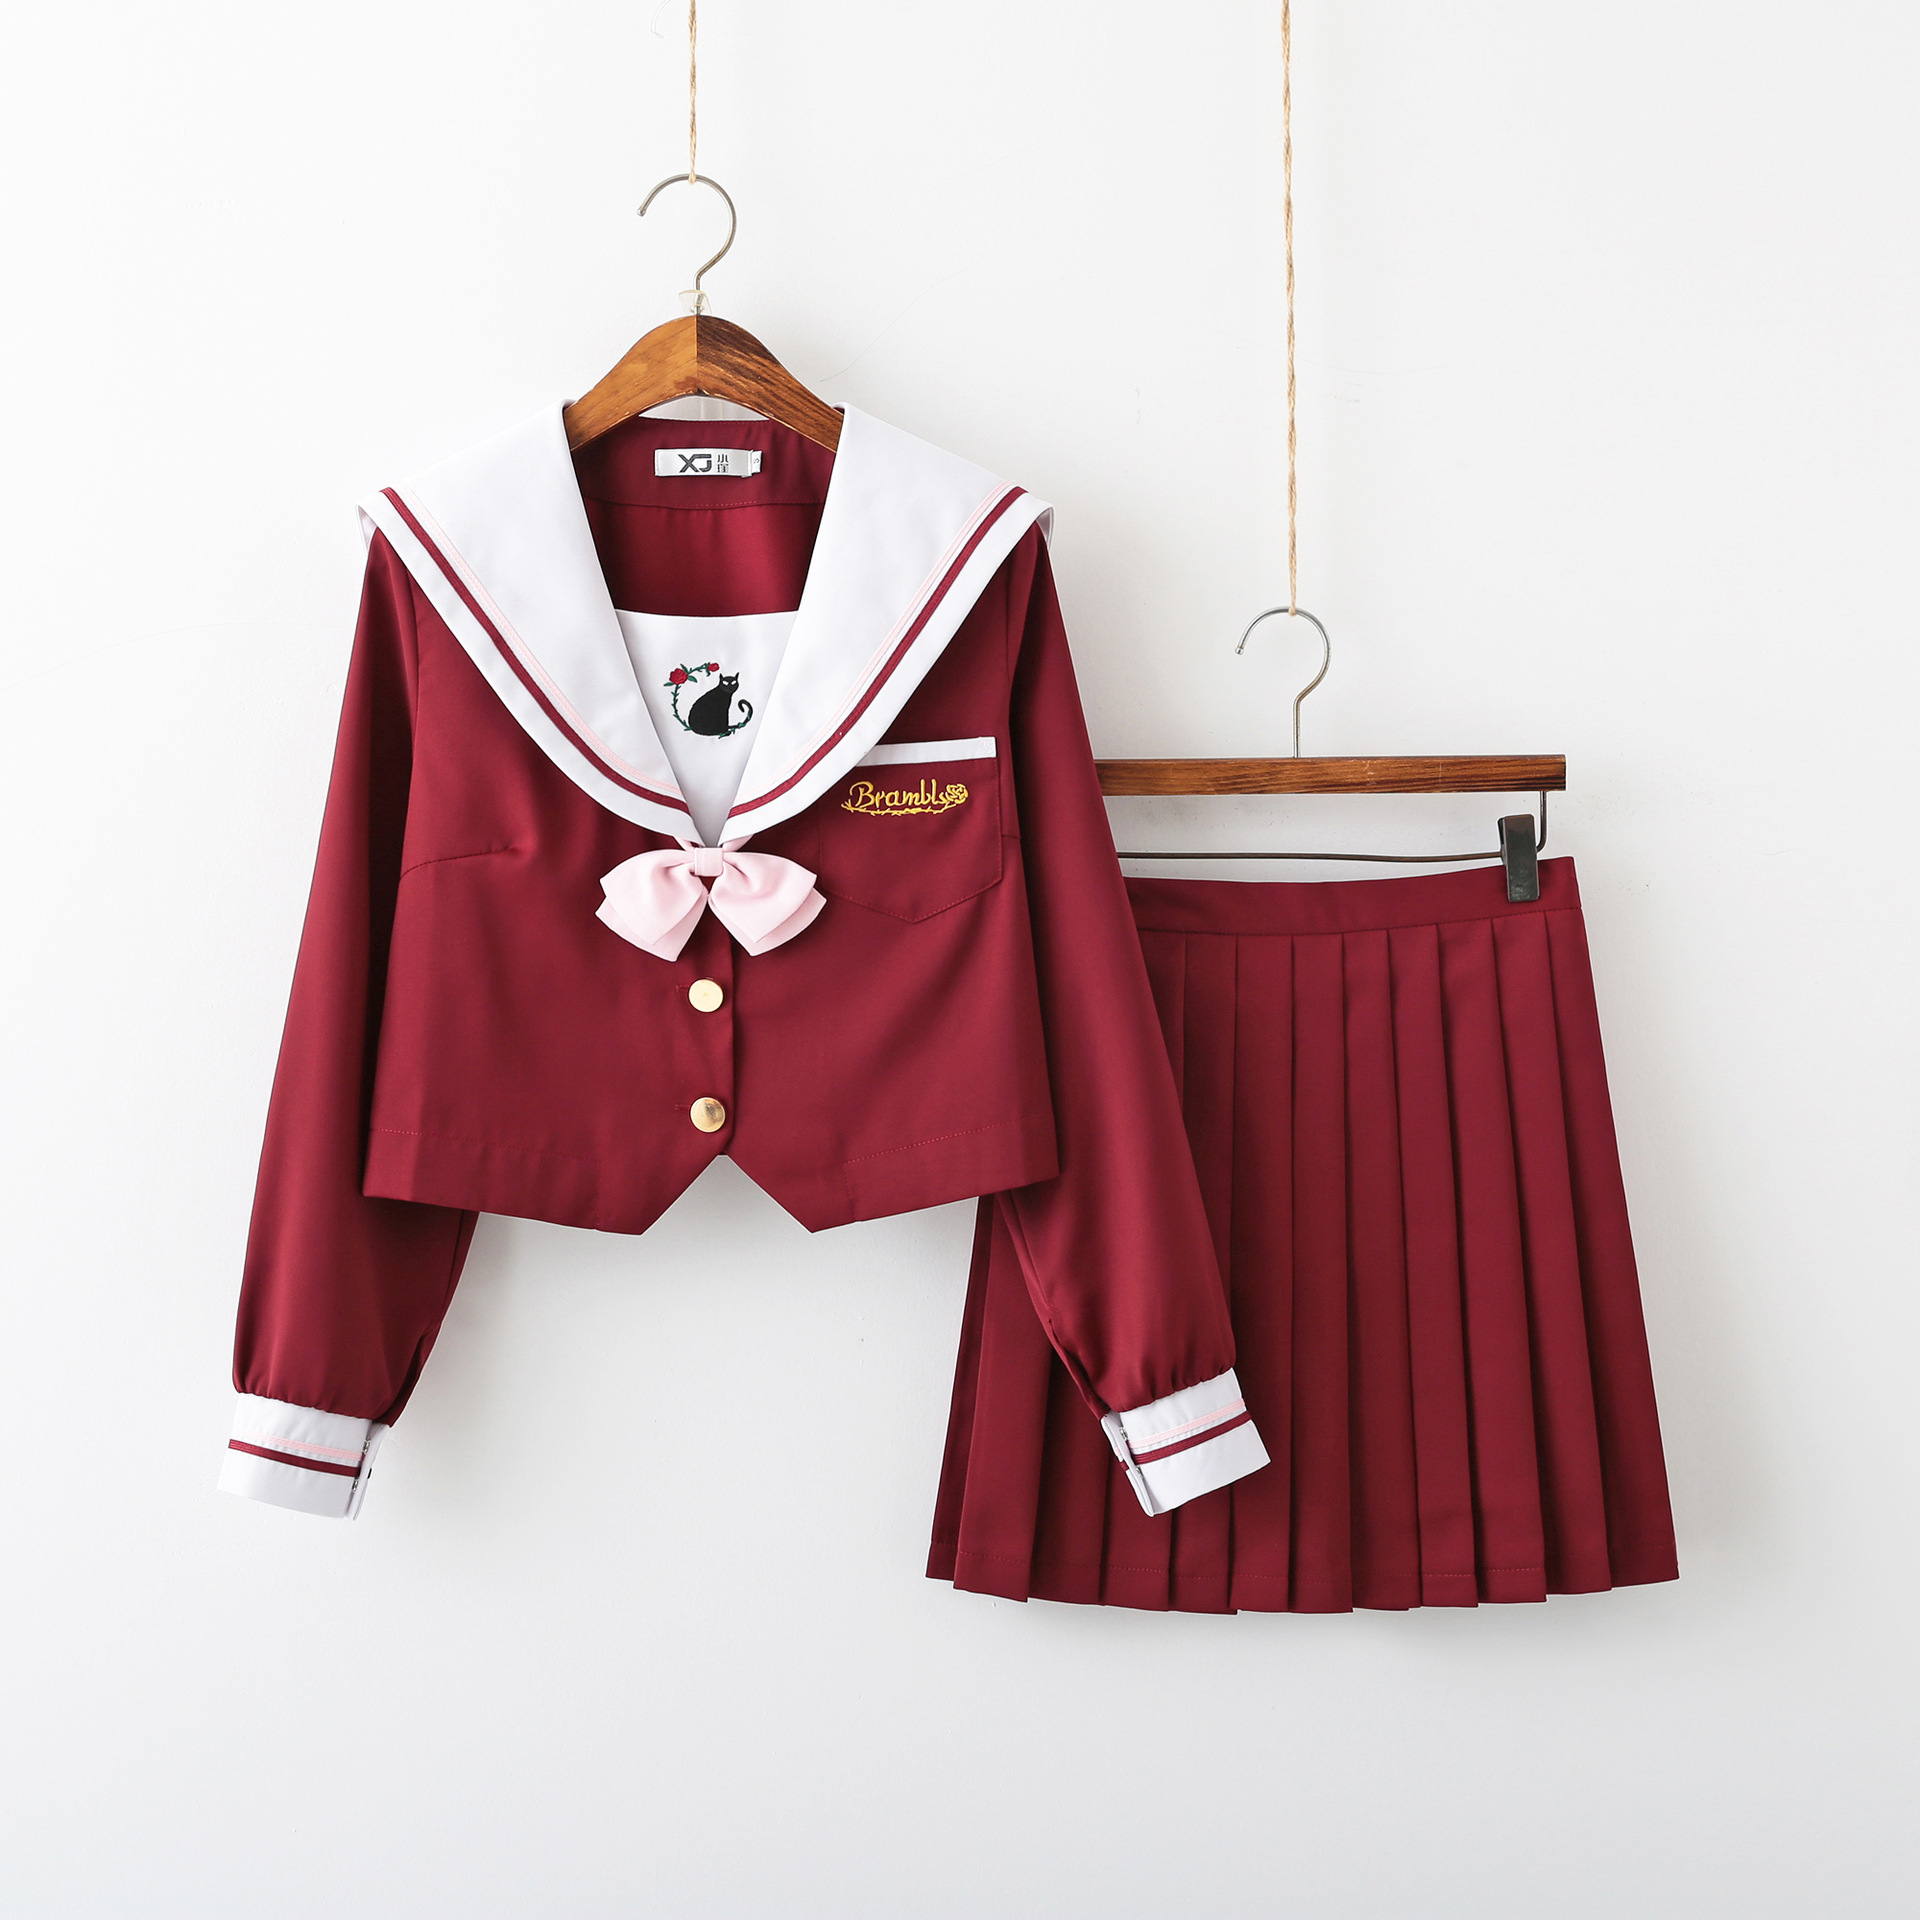 Student British Wind Uniform Suit Womens Cosplay Costume Sailor Jk Uniform Skirt